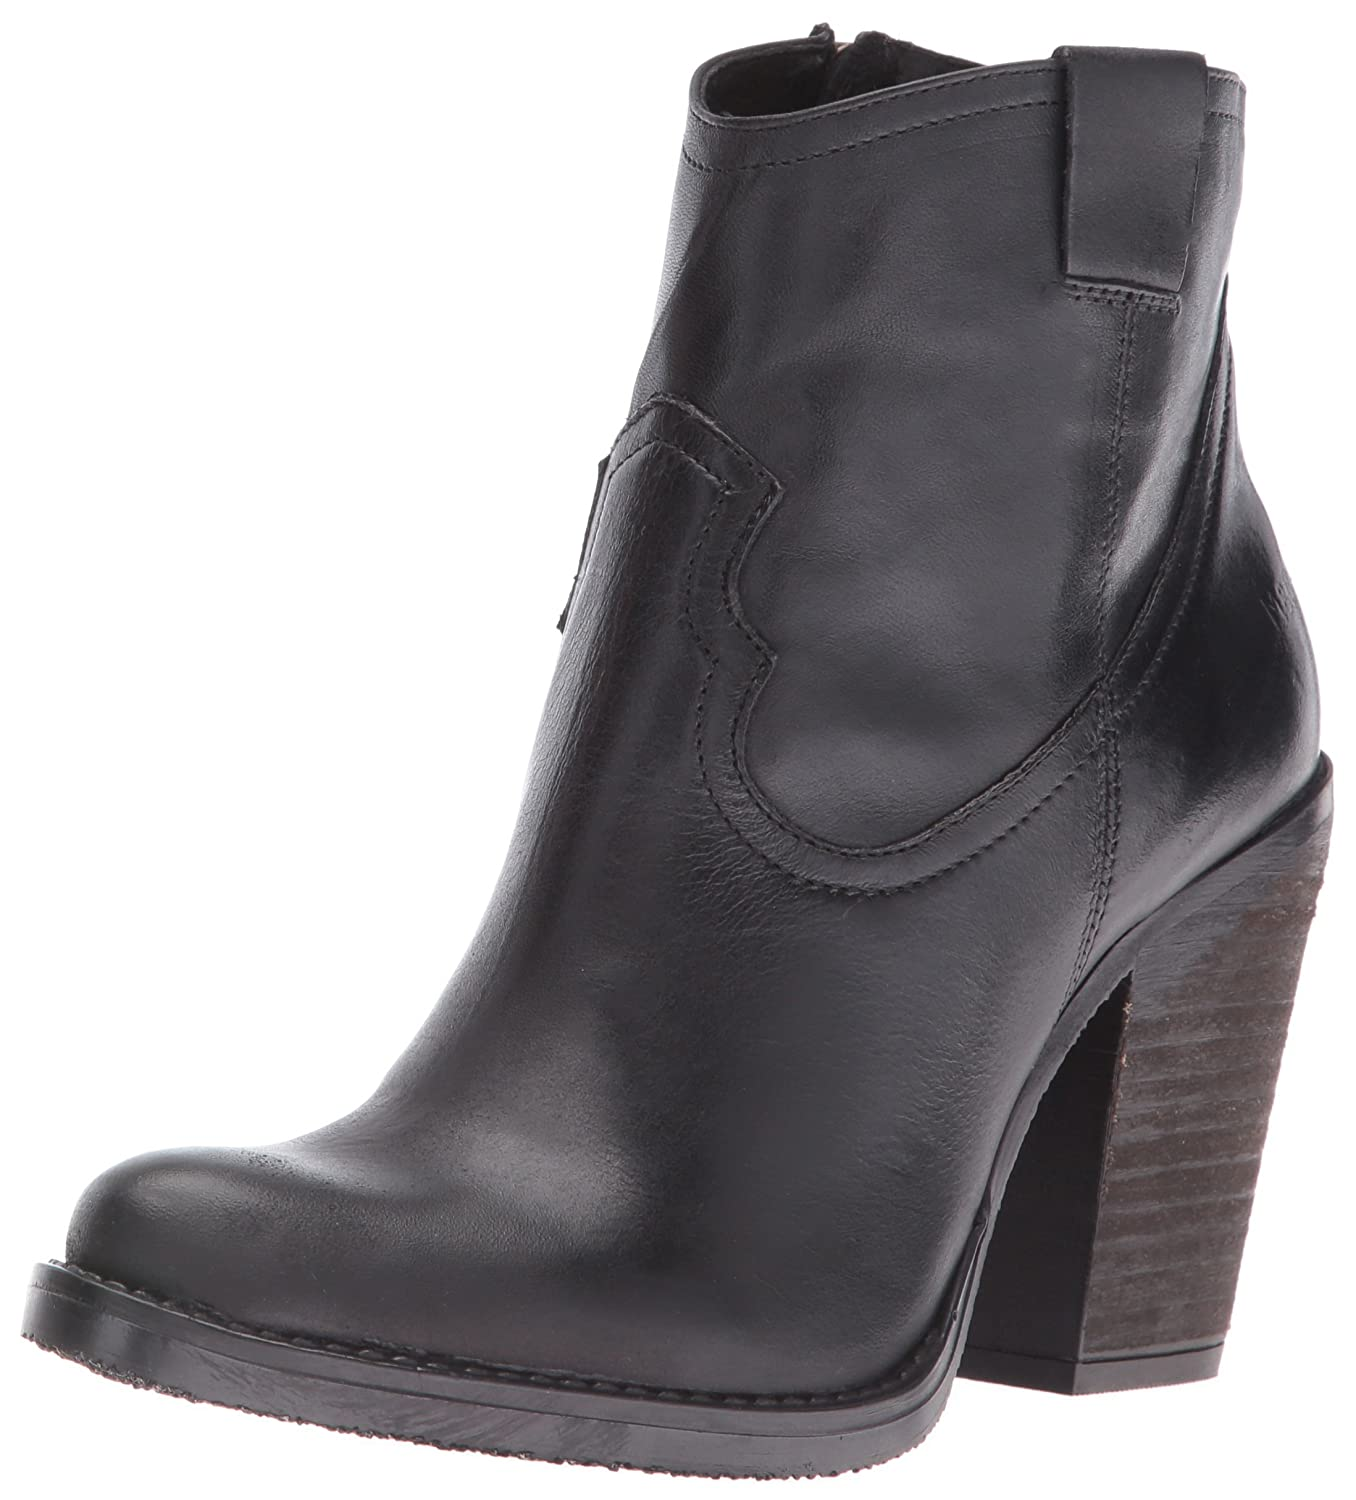 Musse & Boot Cloud Women's Josie Western Boot & B01L6S0J7I 37 EU/6-6.5 M US|Black 967928